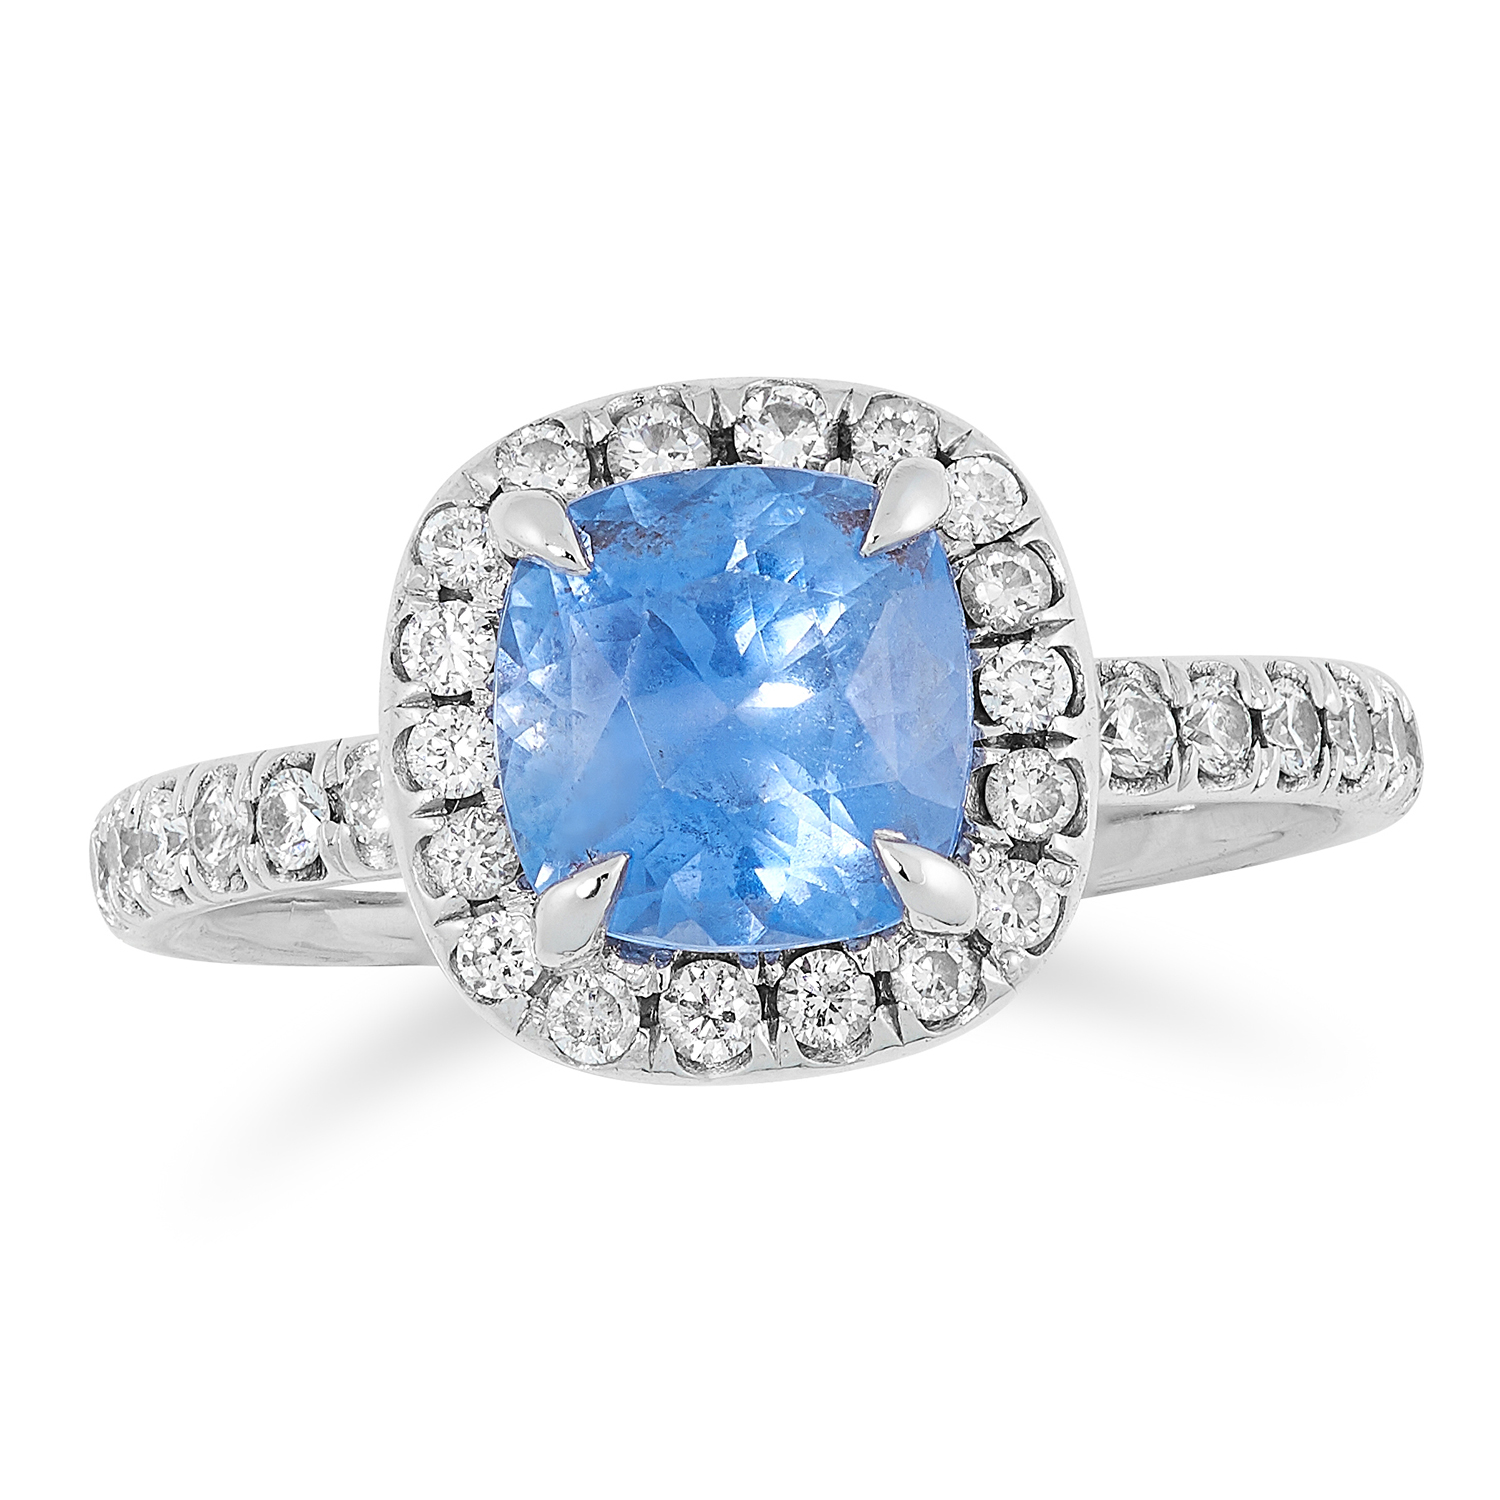 1.44 CARAT SAPPHIRE AND DIAMOND CLUSTER RING set with a cushion cut Ceylon sapphire of 1.44 carats